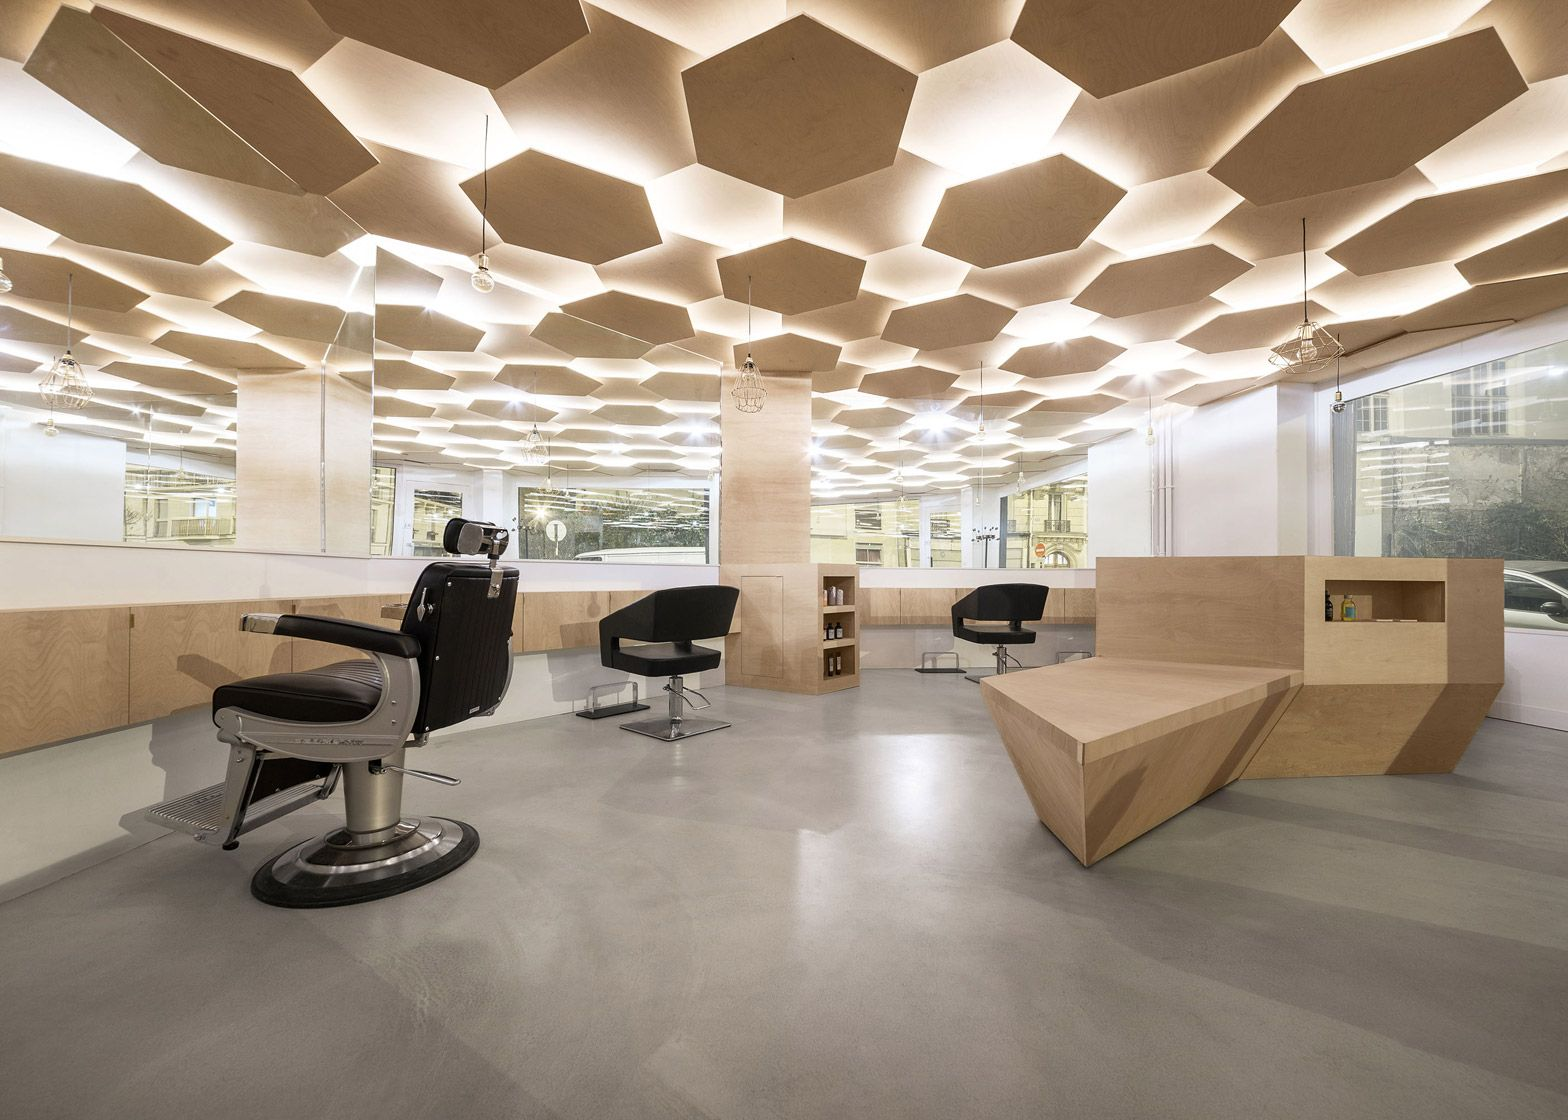 Exterior: Sheets Of Plywood Were Layered To Create The Ceiling